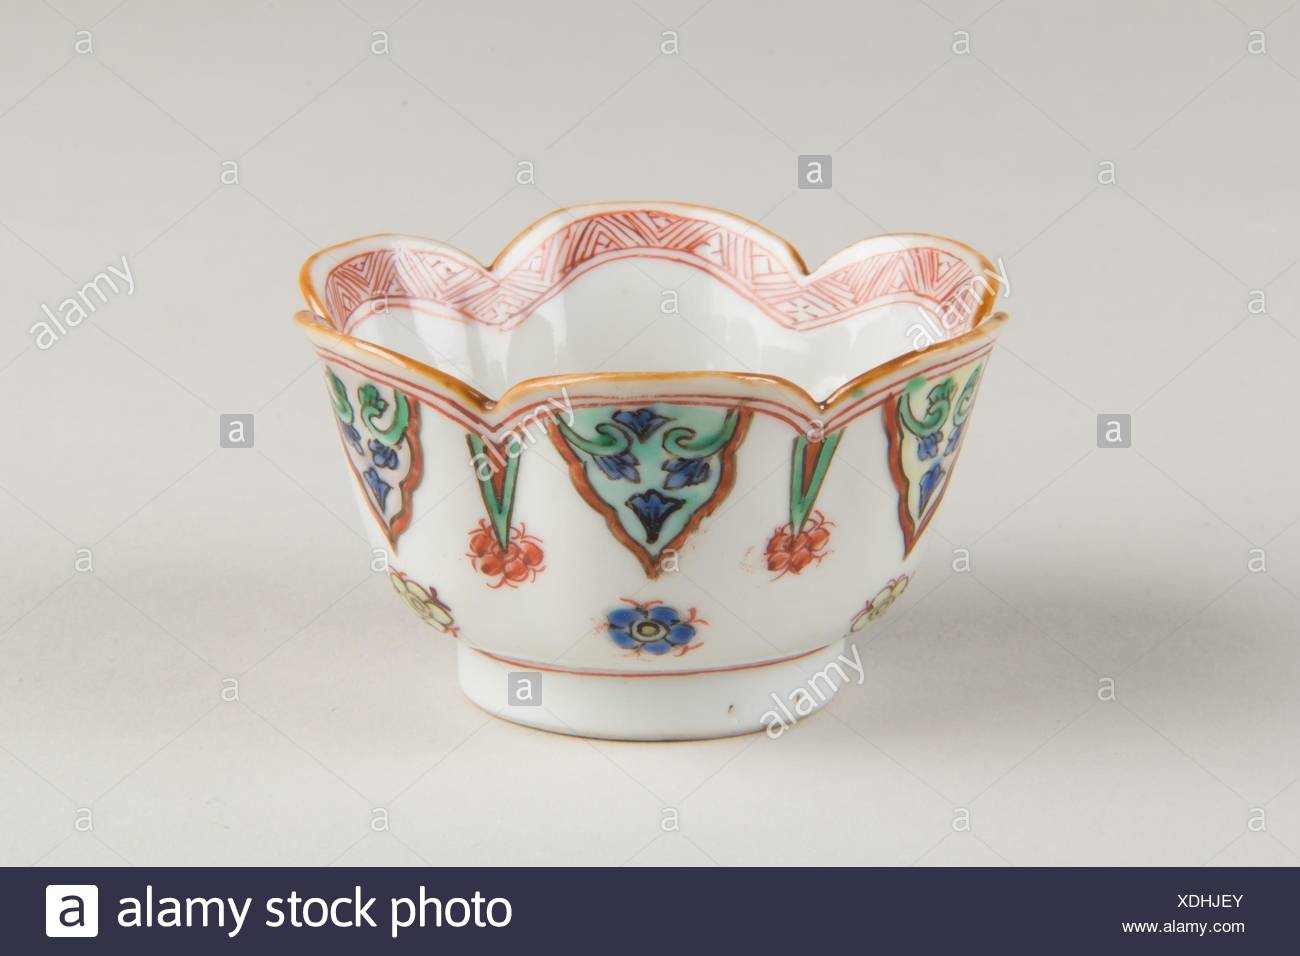 Cup. Period: Qing dynasty (1644-1911); Date: first half of the 19th century; Culture: China; Medium: Porcelain painted in overglaze polychrome - Stock Image